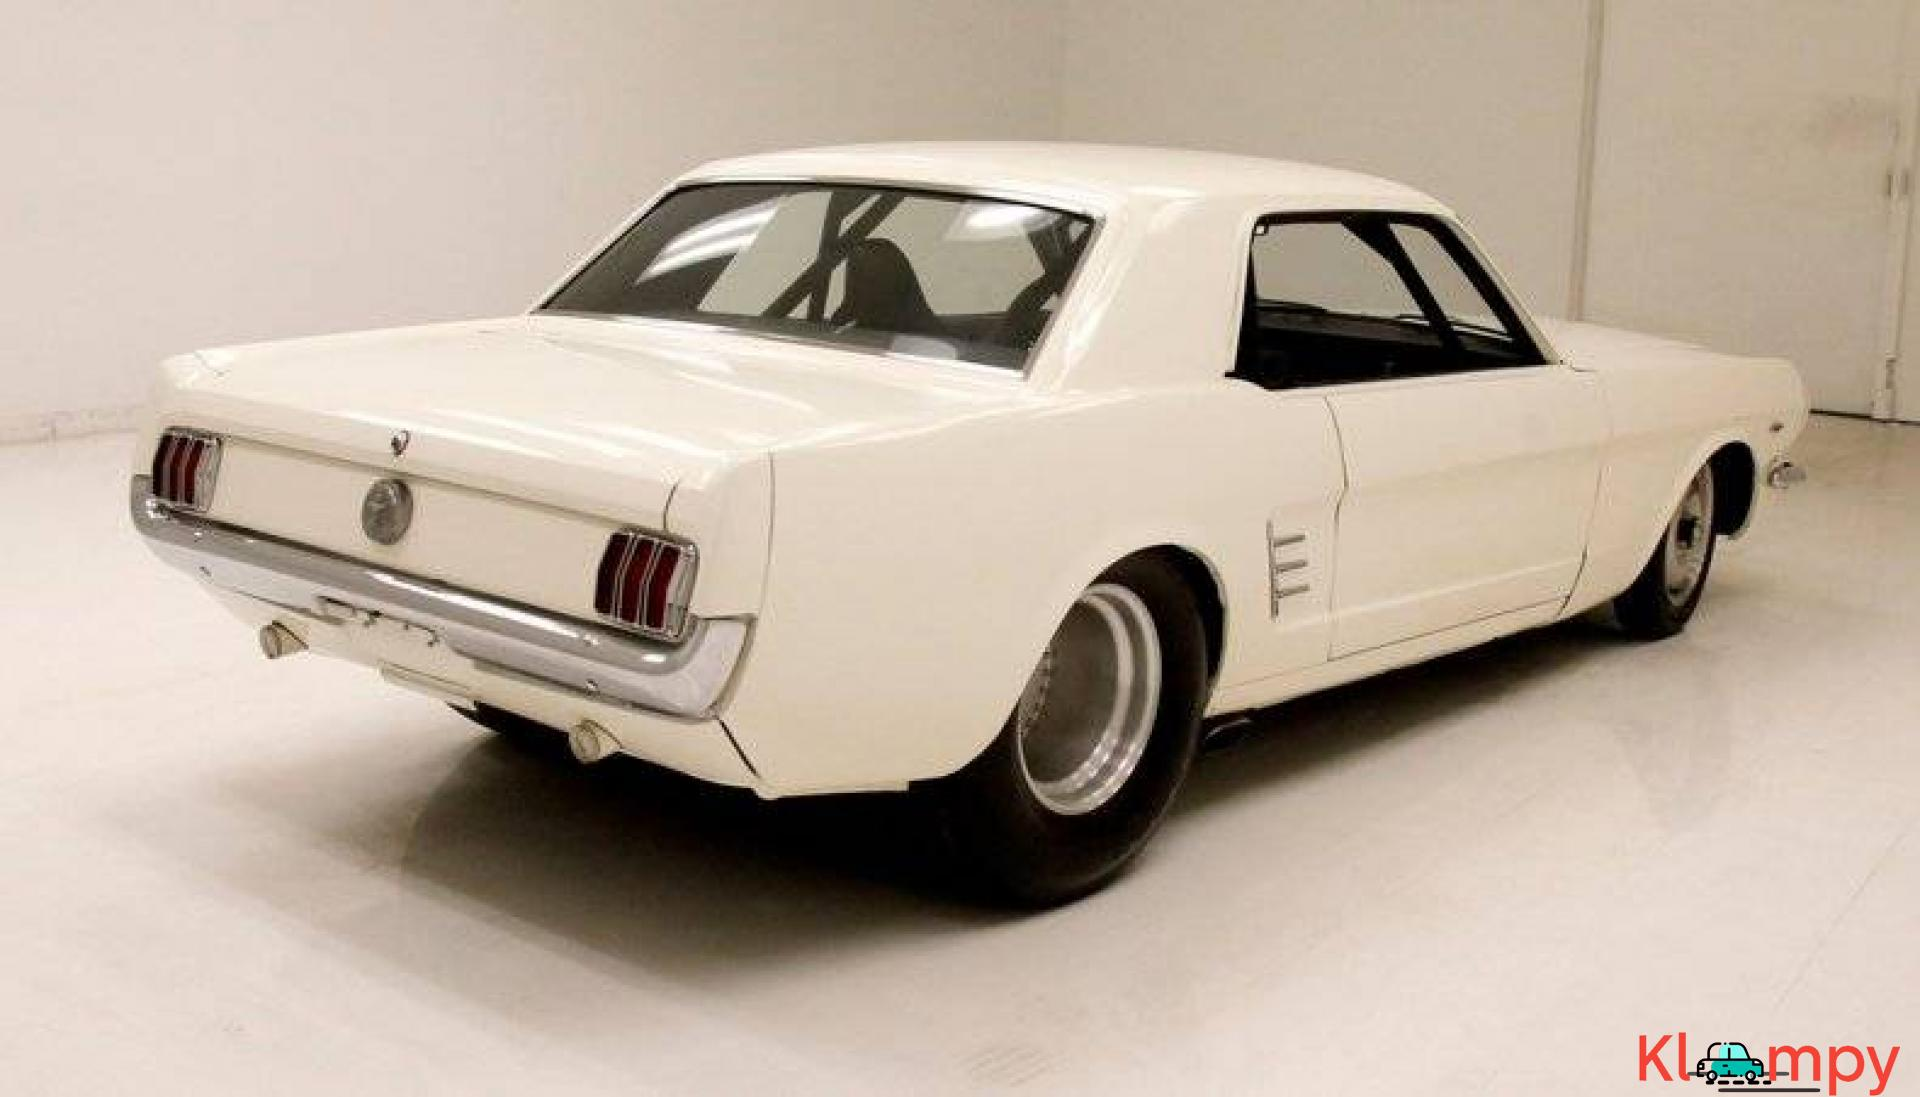 1966 Ford Mustang Coupe 302ci V8 White - 5/20